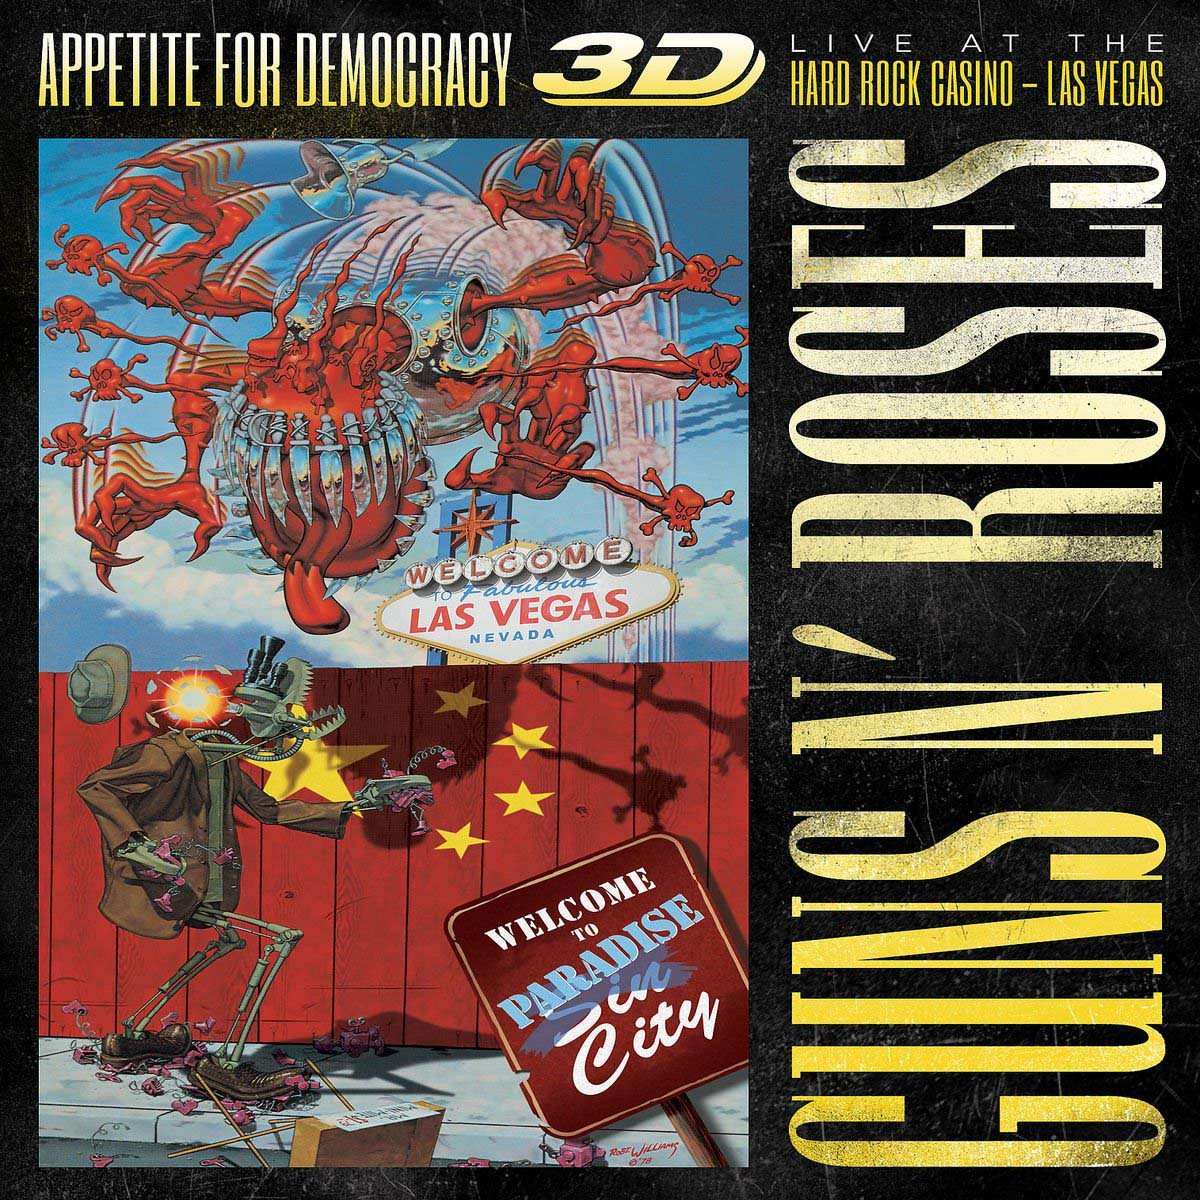 Appetite For Democracy 3D: Live At The Hard Rock Casino, Las Vegas - Standard Edition